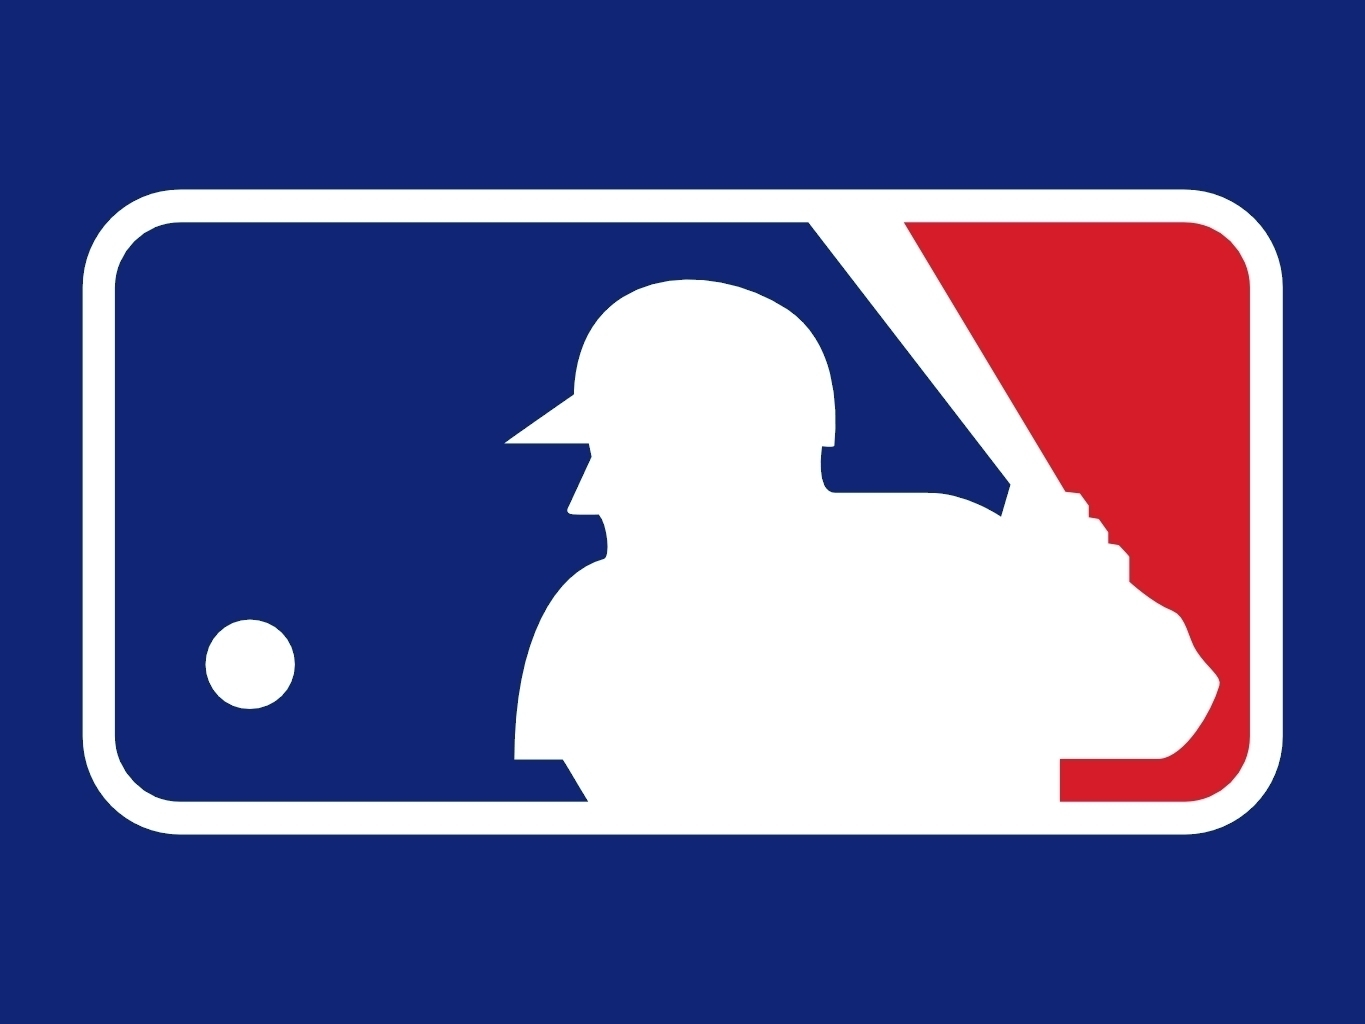 The start of the 2017 MLB season brings a new opportunity for all teams. (credit: Philip Wilkins via Buffalo Rising)